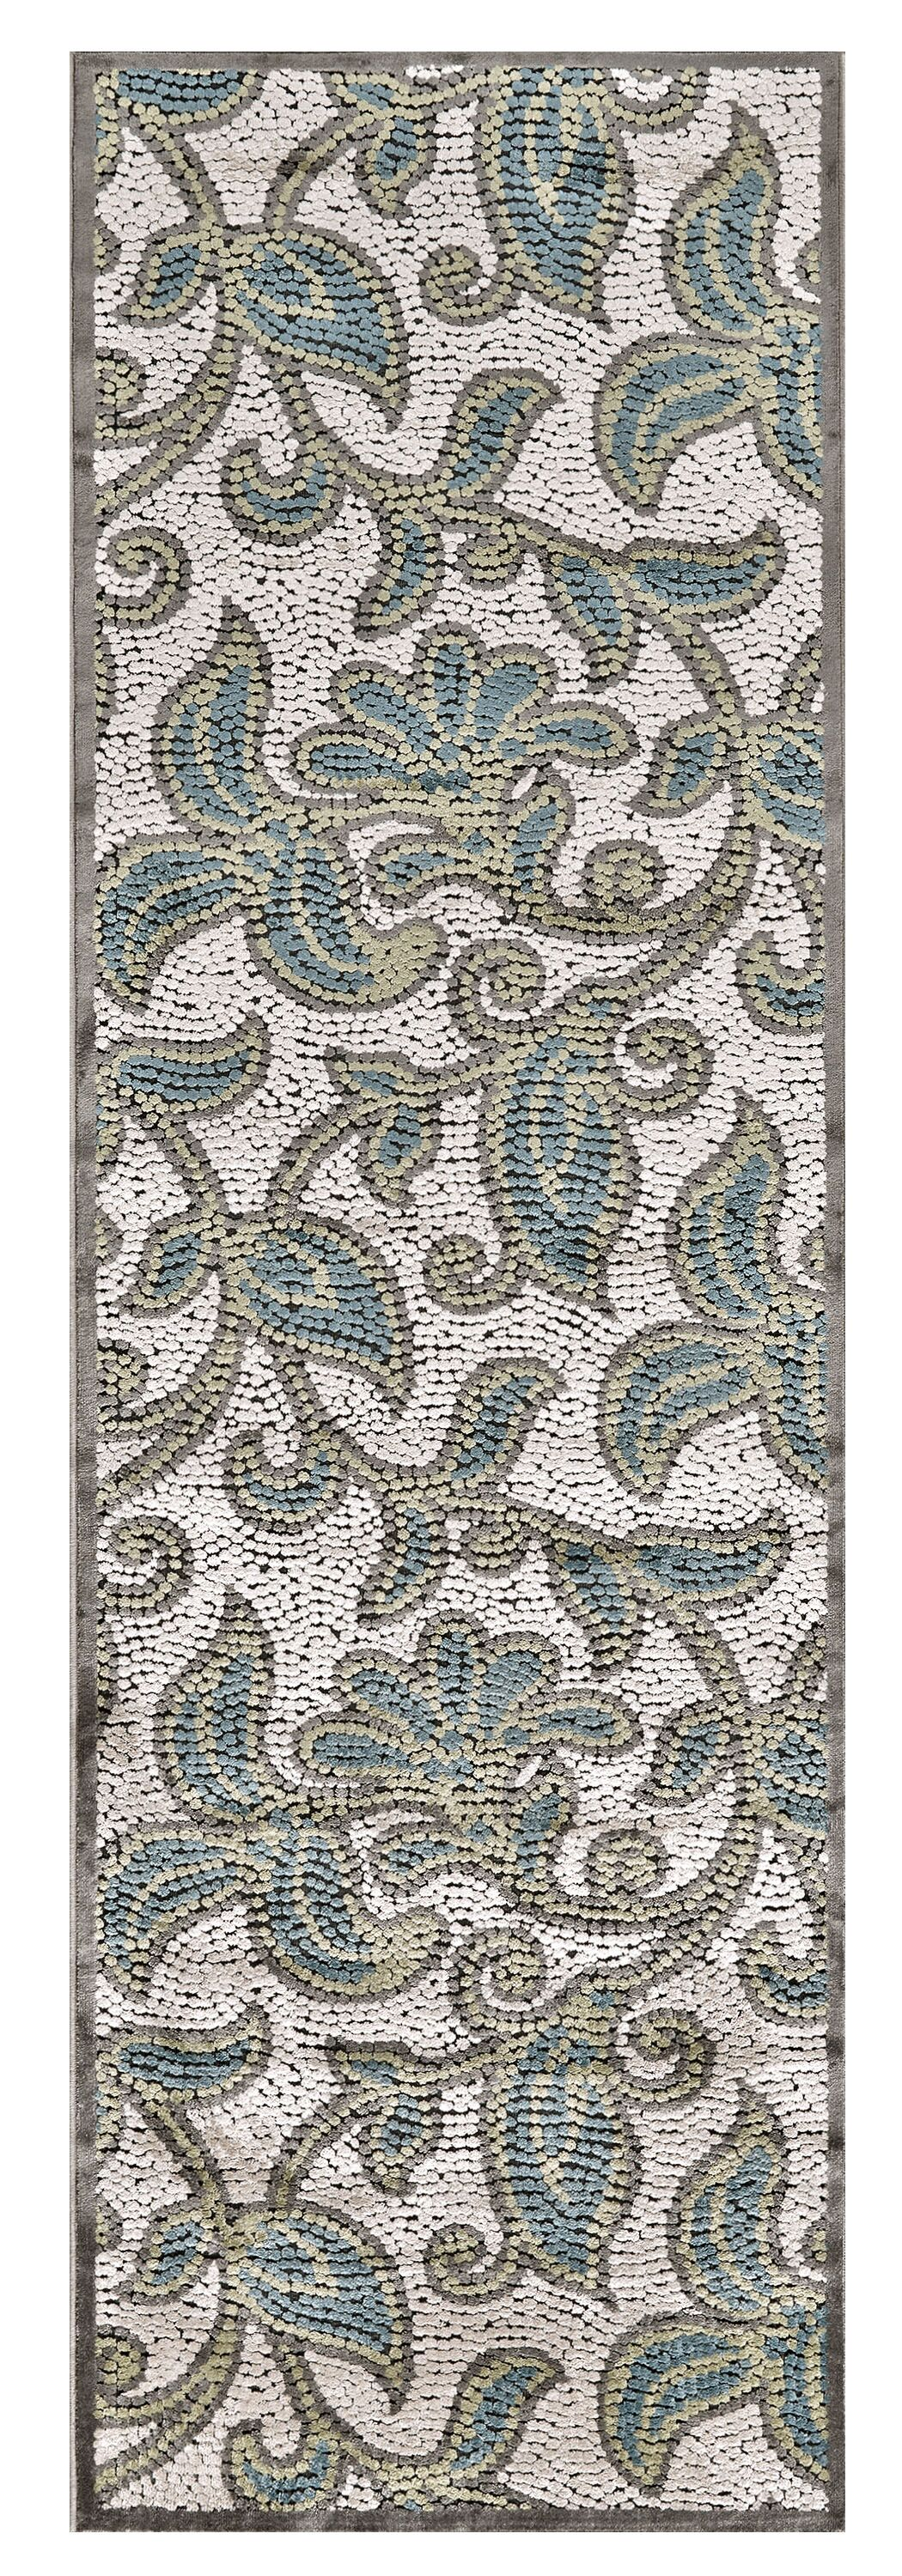 Snydertown Green/Grey Area Rug Rug Size: Runner 2'6